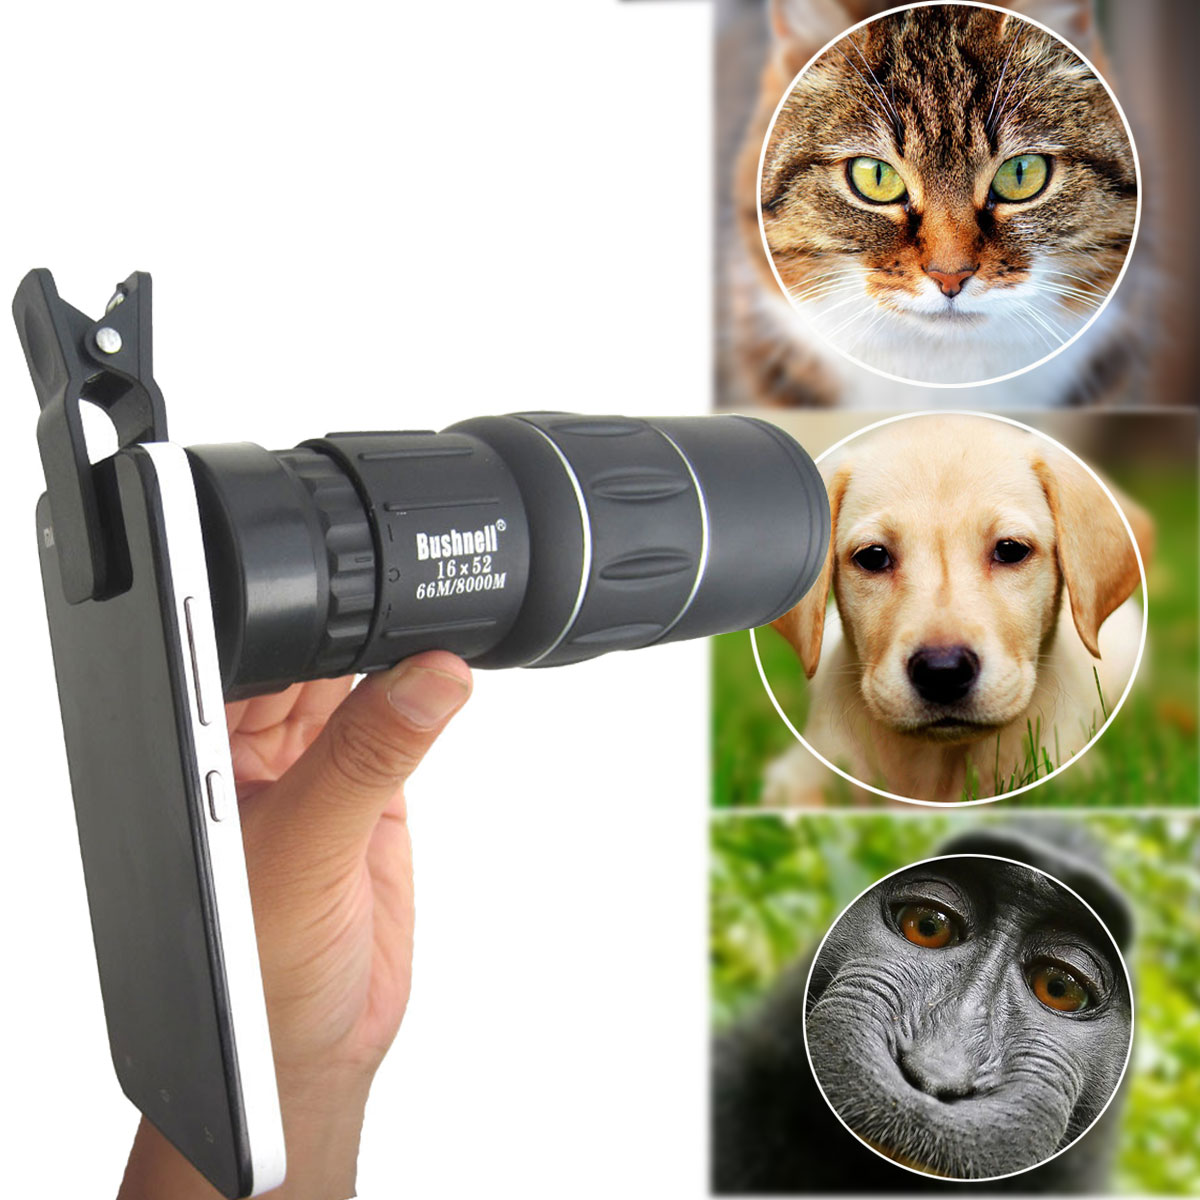 16x52 Hiking Concert Camera Lens Telescope Monocular +Universal Clip For Smartphone